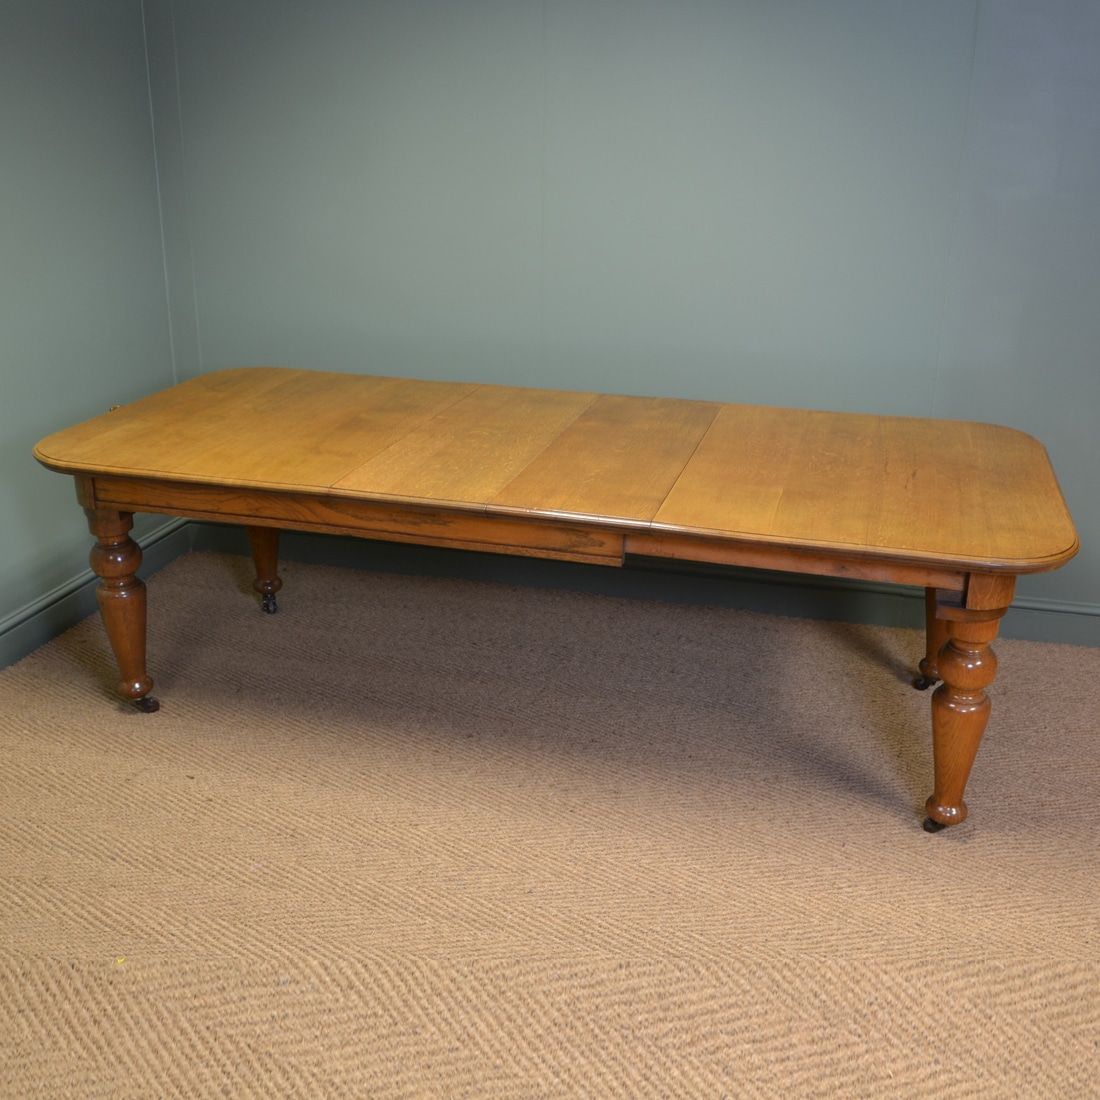 Super Quality Large Golden Oak Antique Victorian Extending  : 62281 from antiquesworld.co.uk size 1100 x 1100 jpeg 766kB